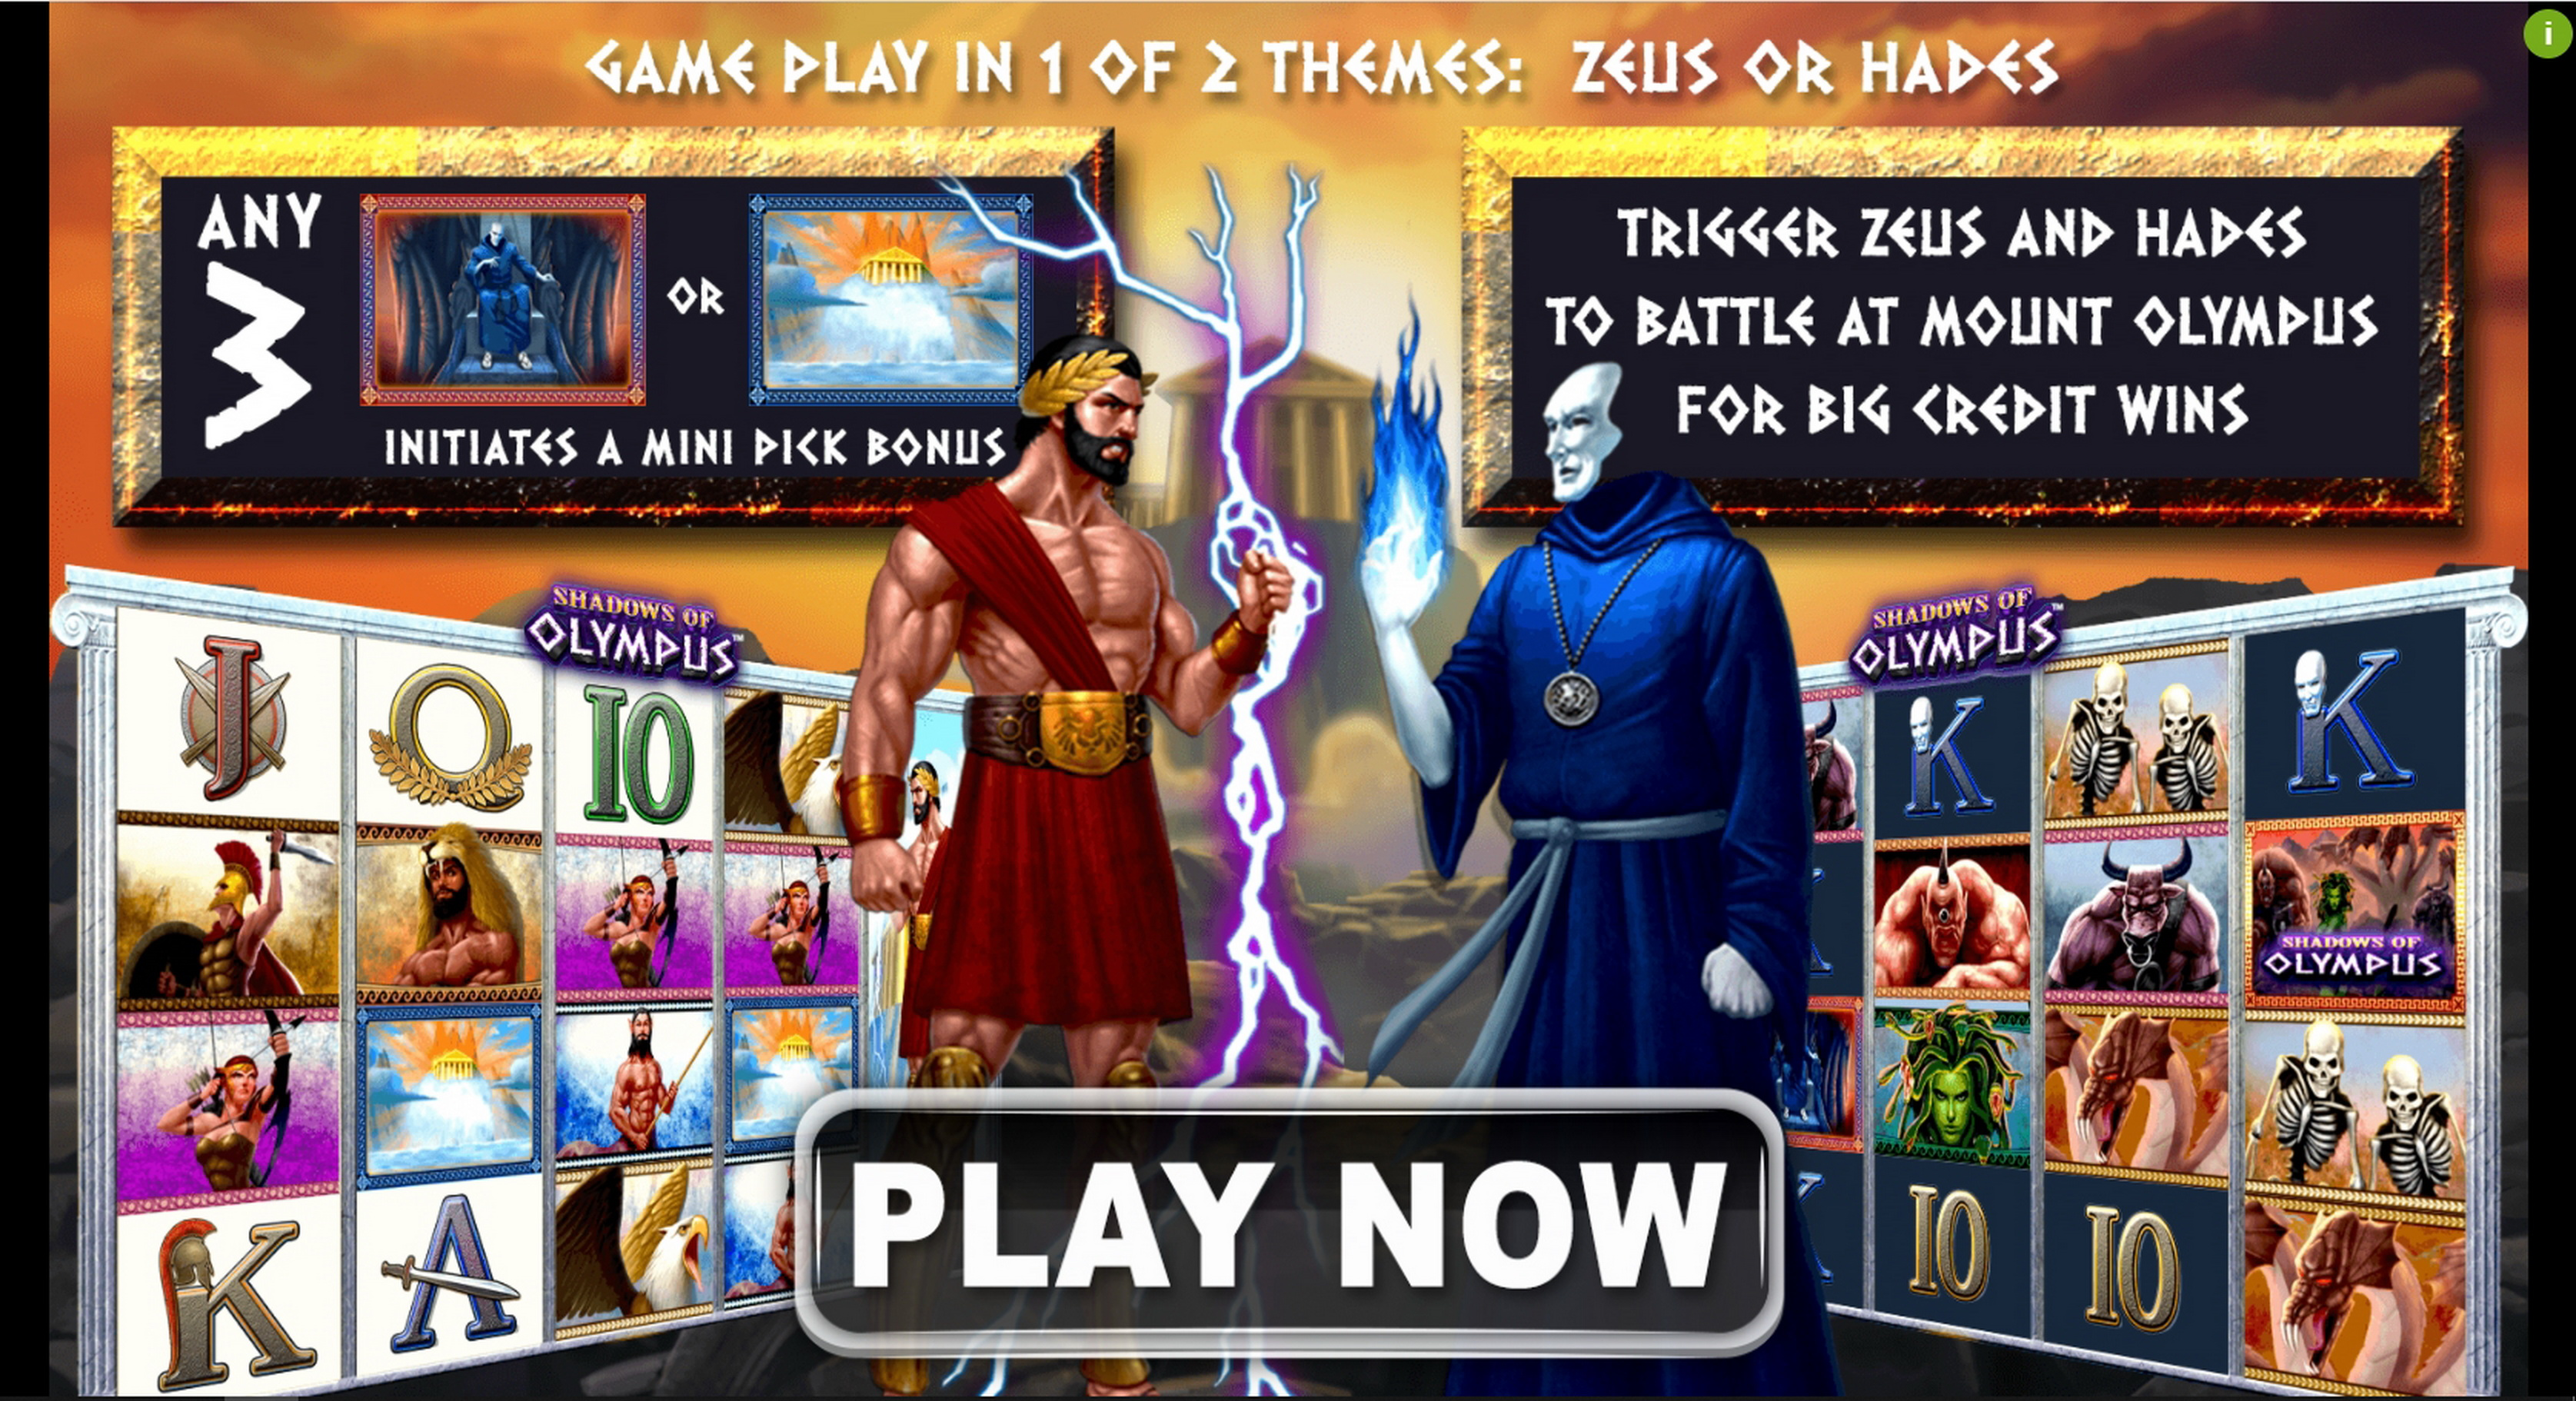 Play Shadows of Olympus Free Casino Slot Game by Spin Games